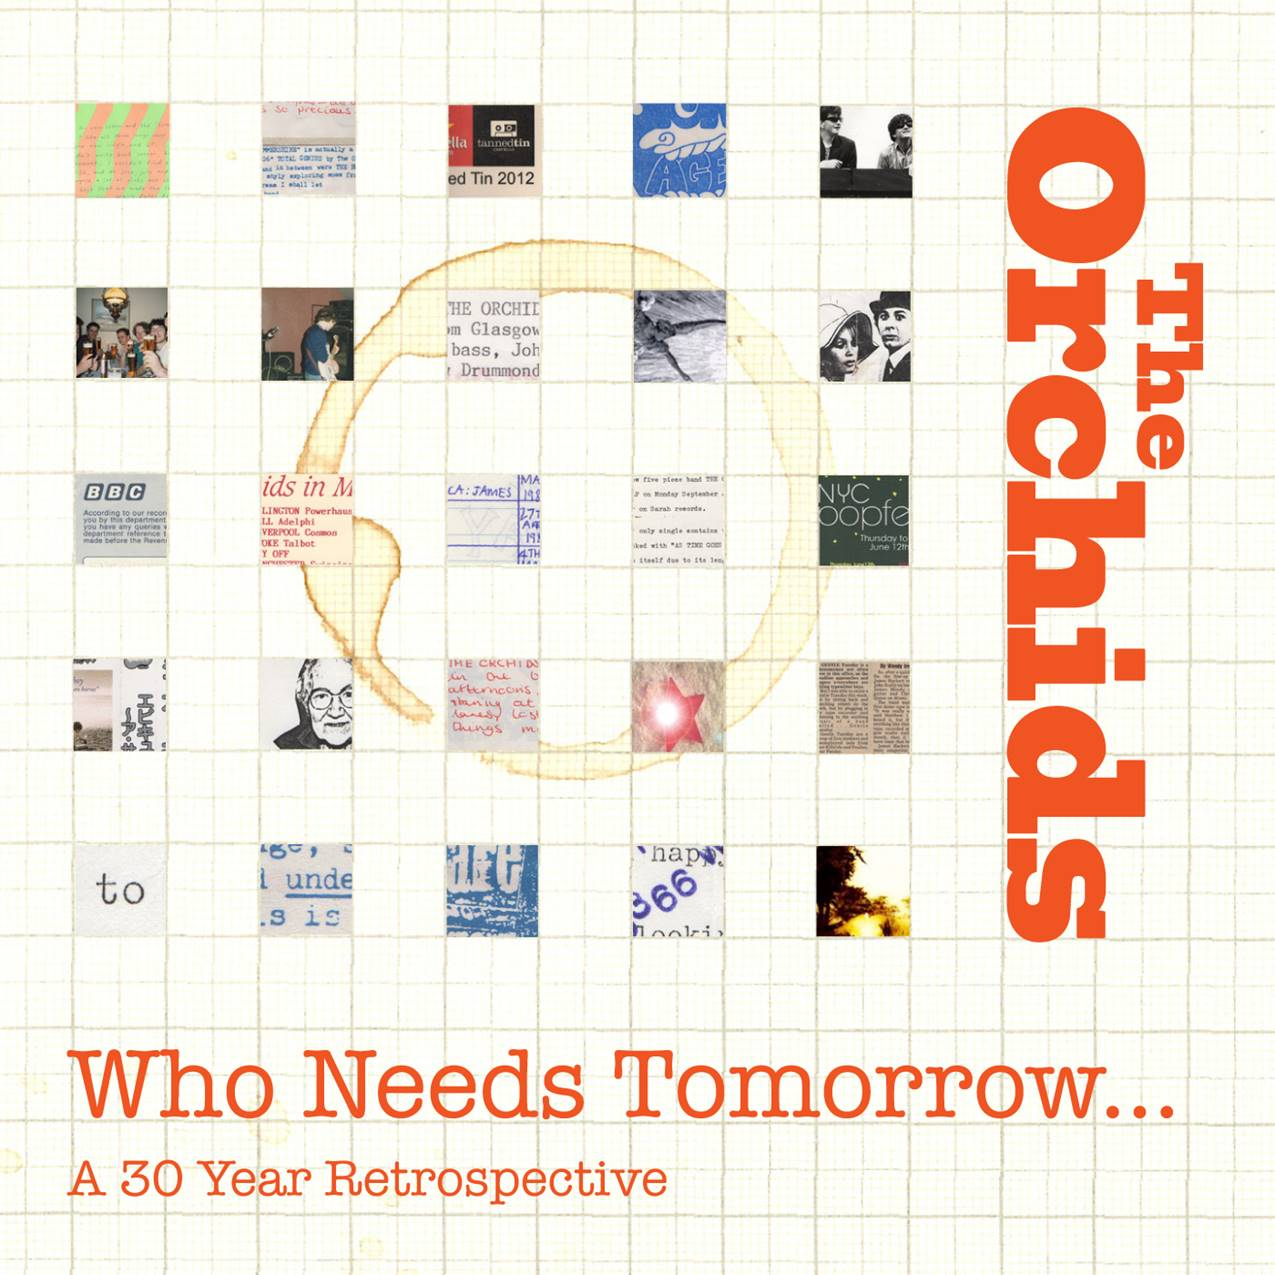 THE ORCHIDS – WHO NEEDS TOMORROW… A 30 YEAR RETROSPECTIVE